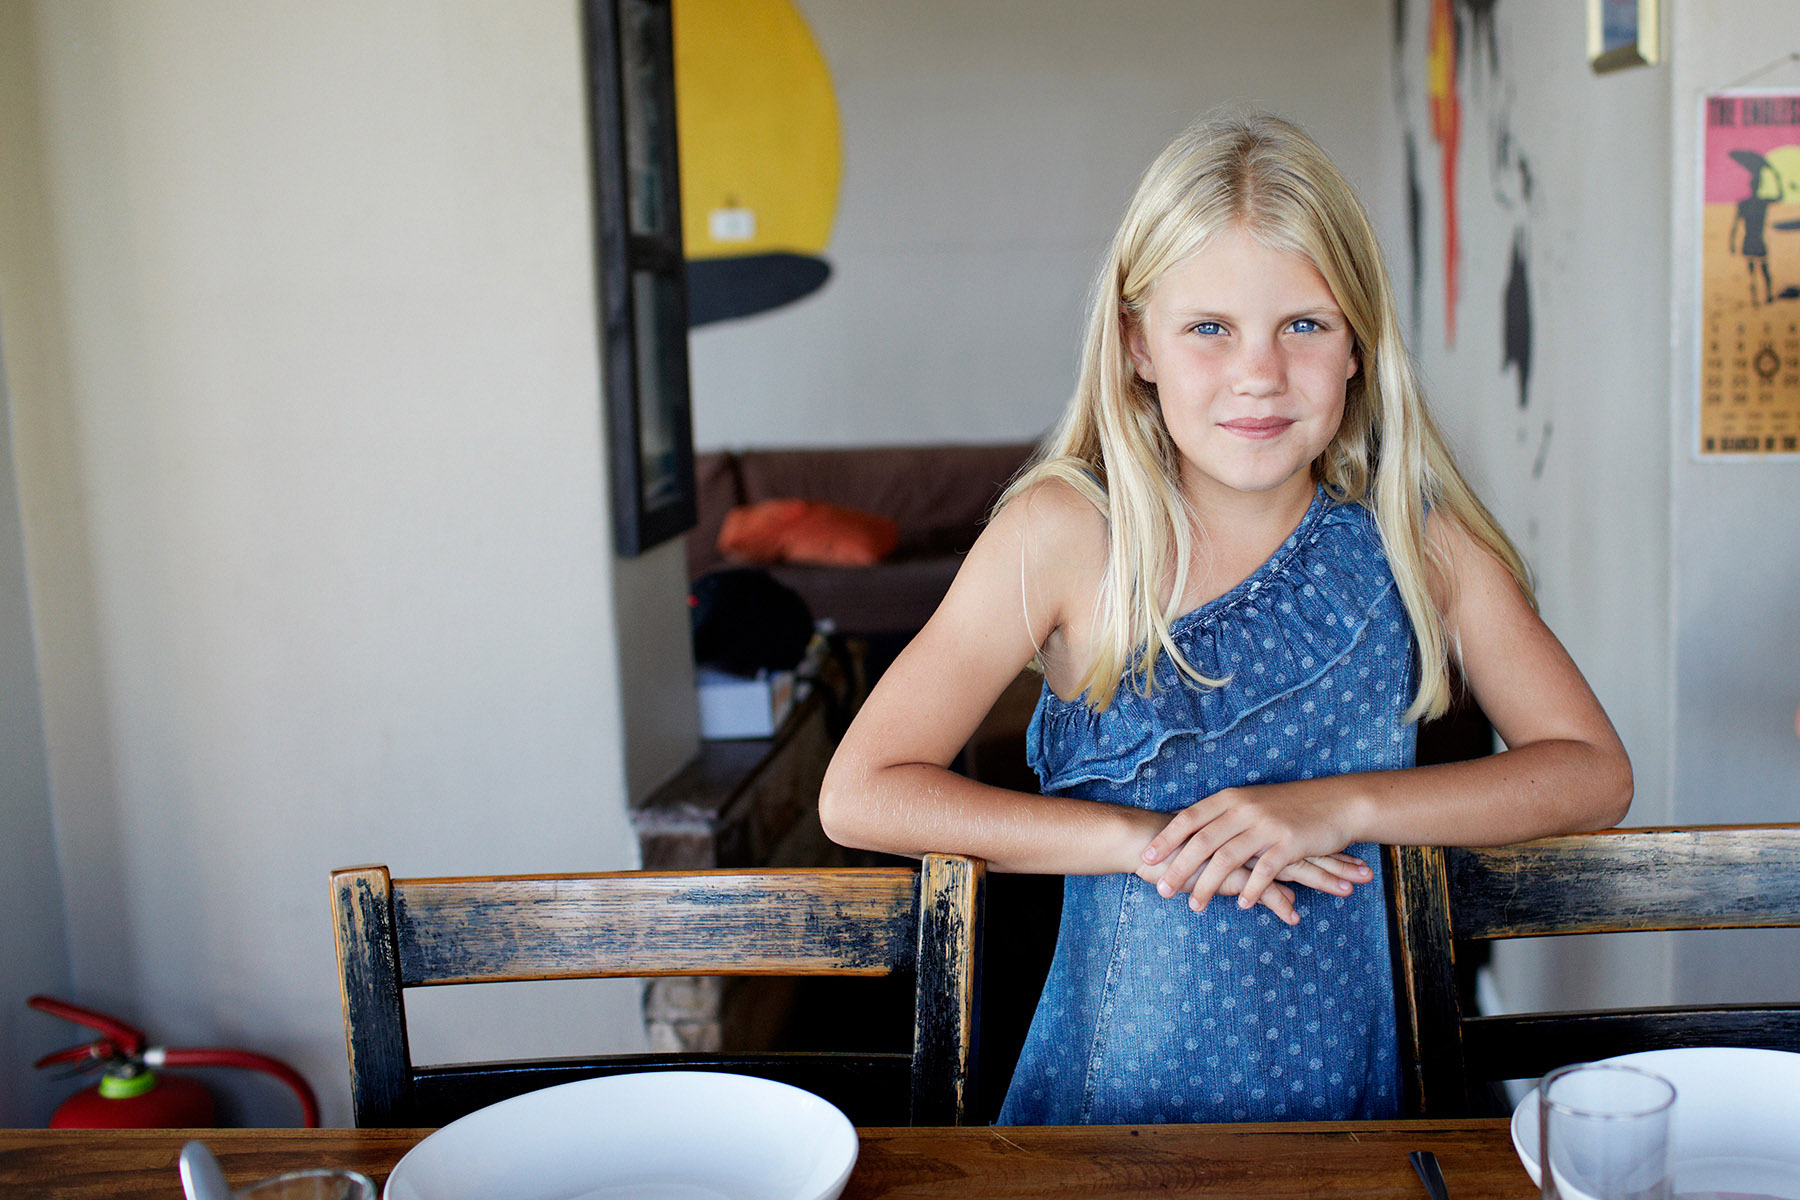 Portrait of girl standing by dinner table in surfer house